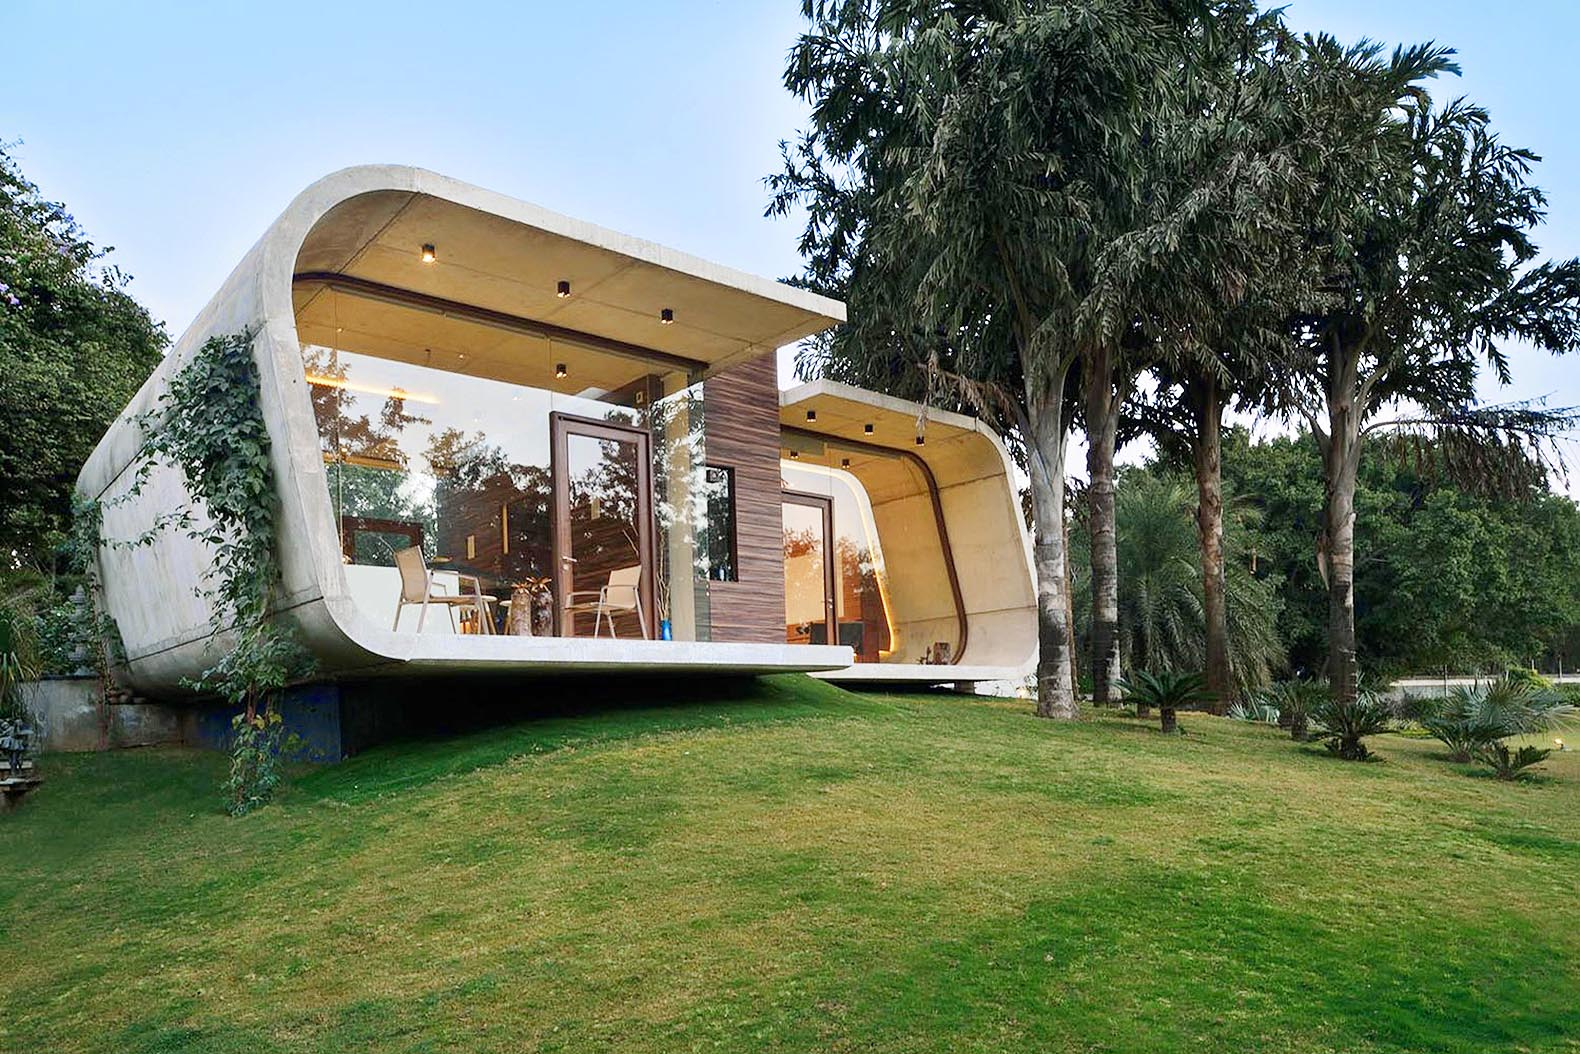 42mm Architecture's sculptural Pool House in India is wrapped in a curved concrete shell